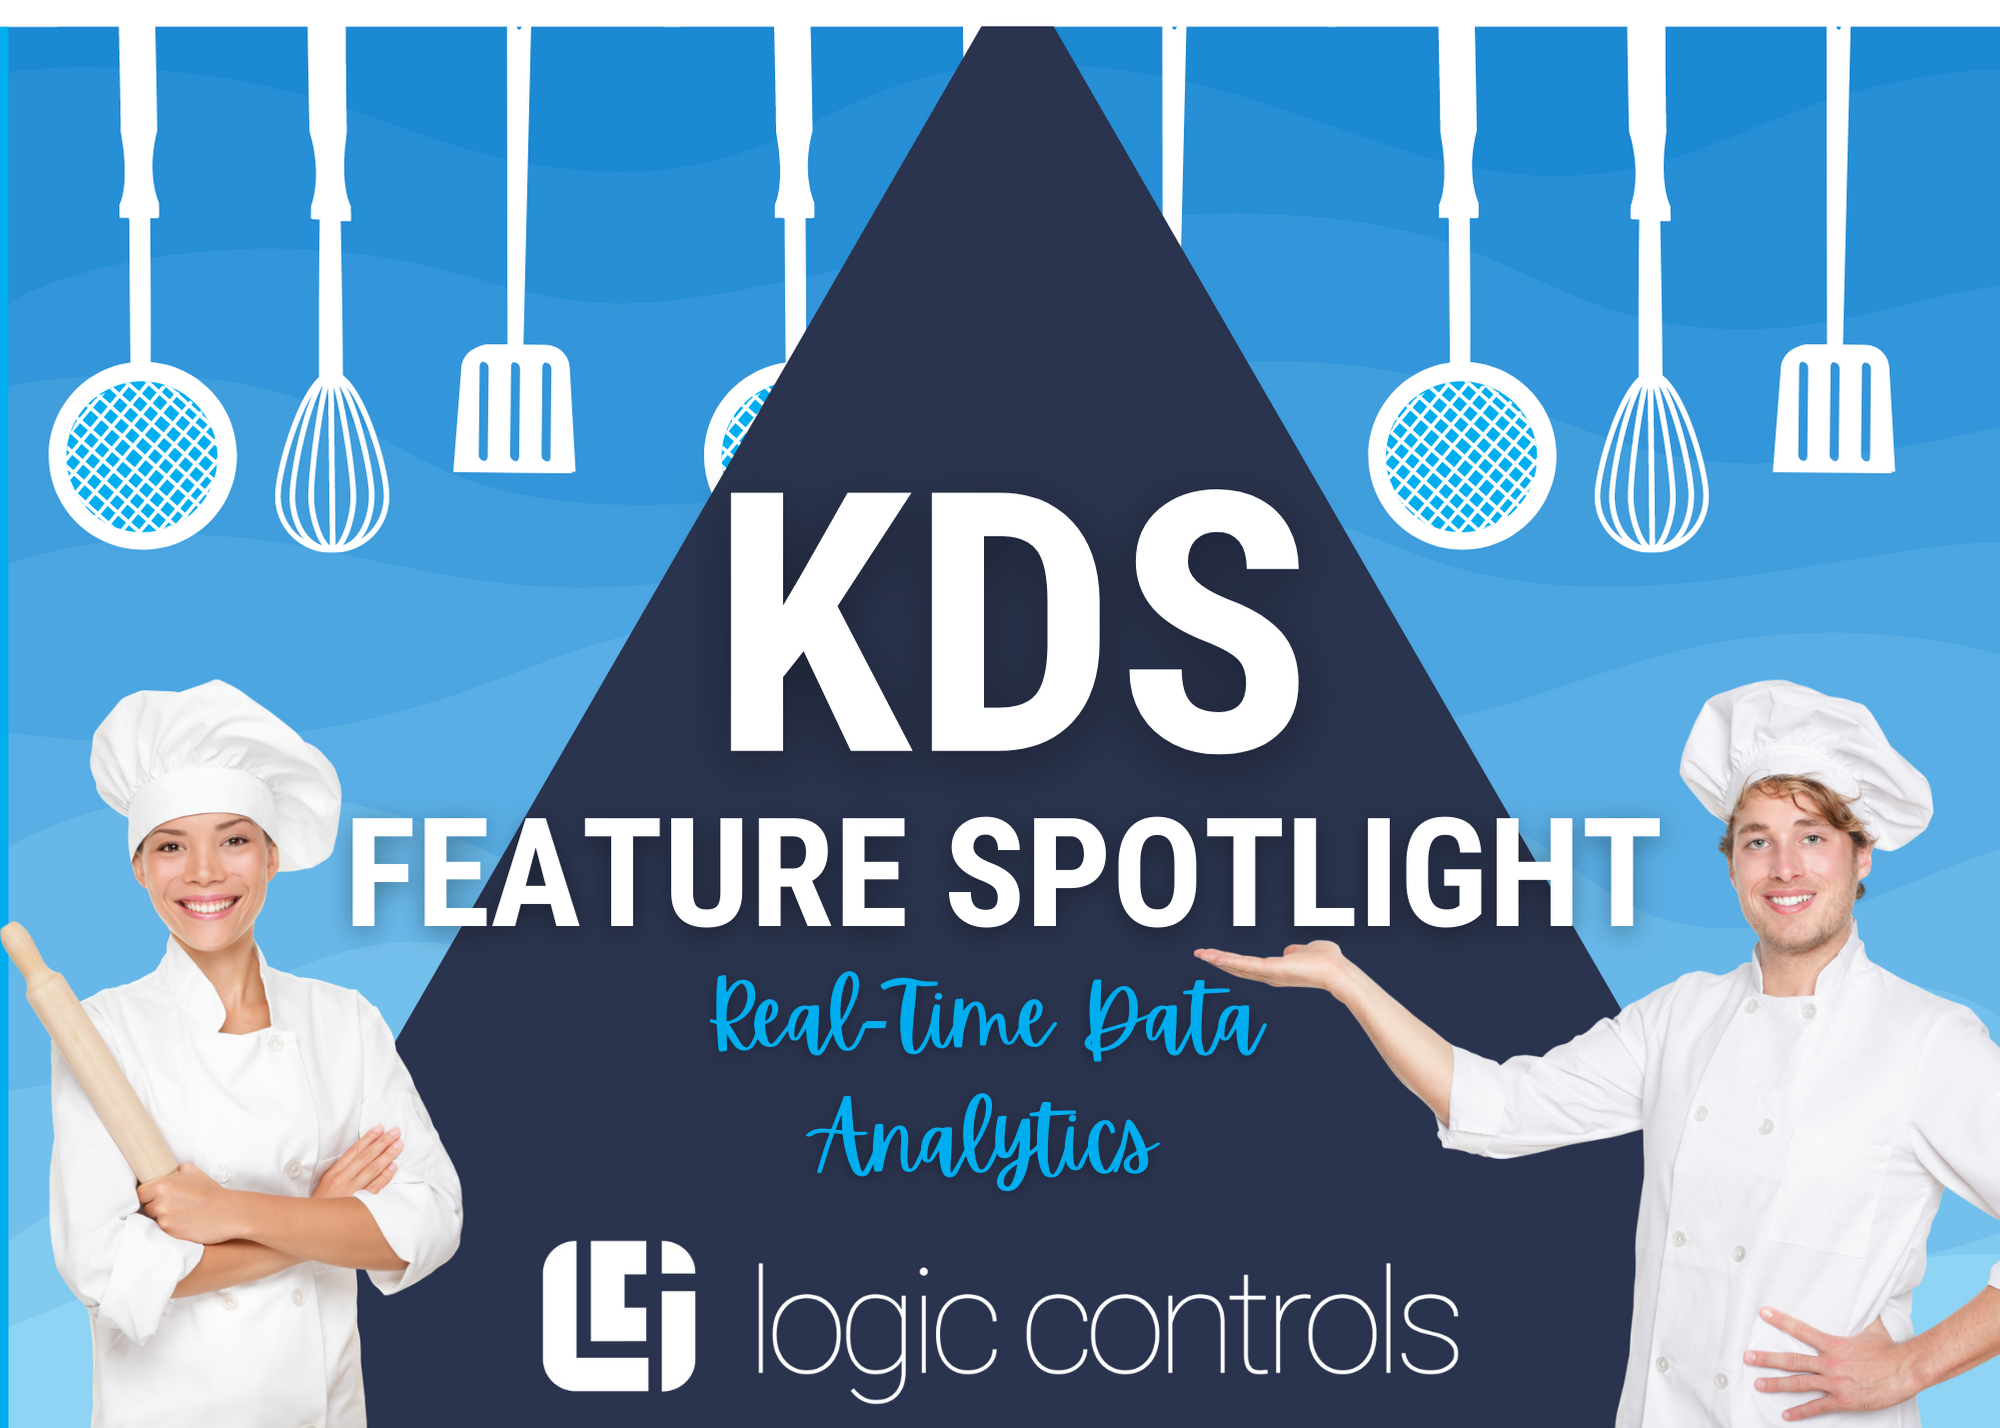 Real-time data analytics KDS kitchengo software feature spotlight for back end operations